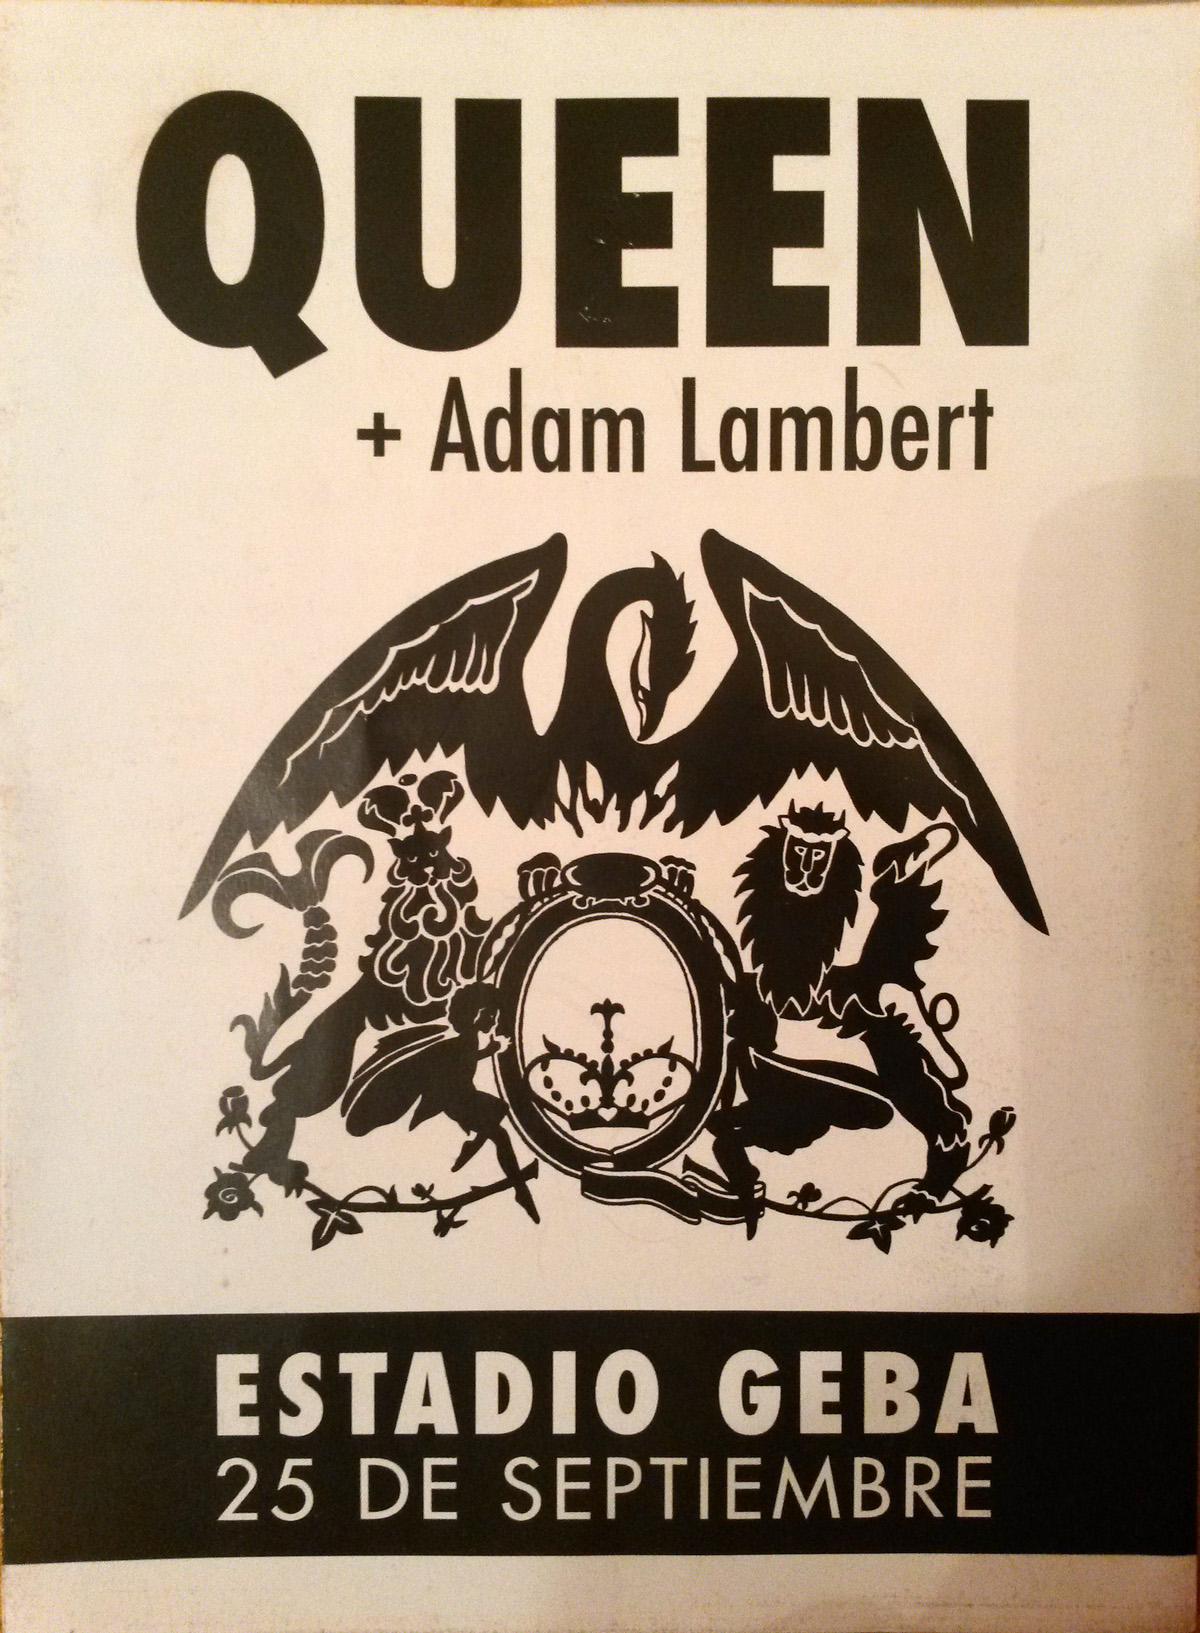 Queen + Adam Lambert in Buenos Aires on 25.09.2015